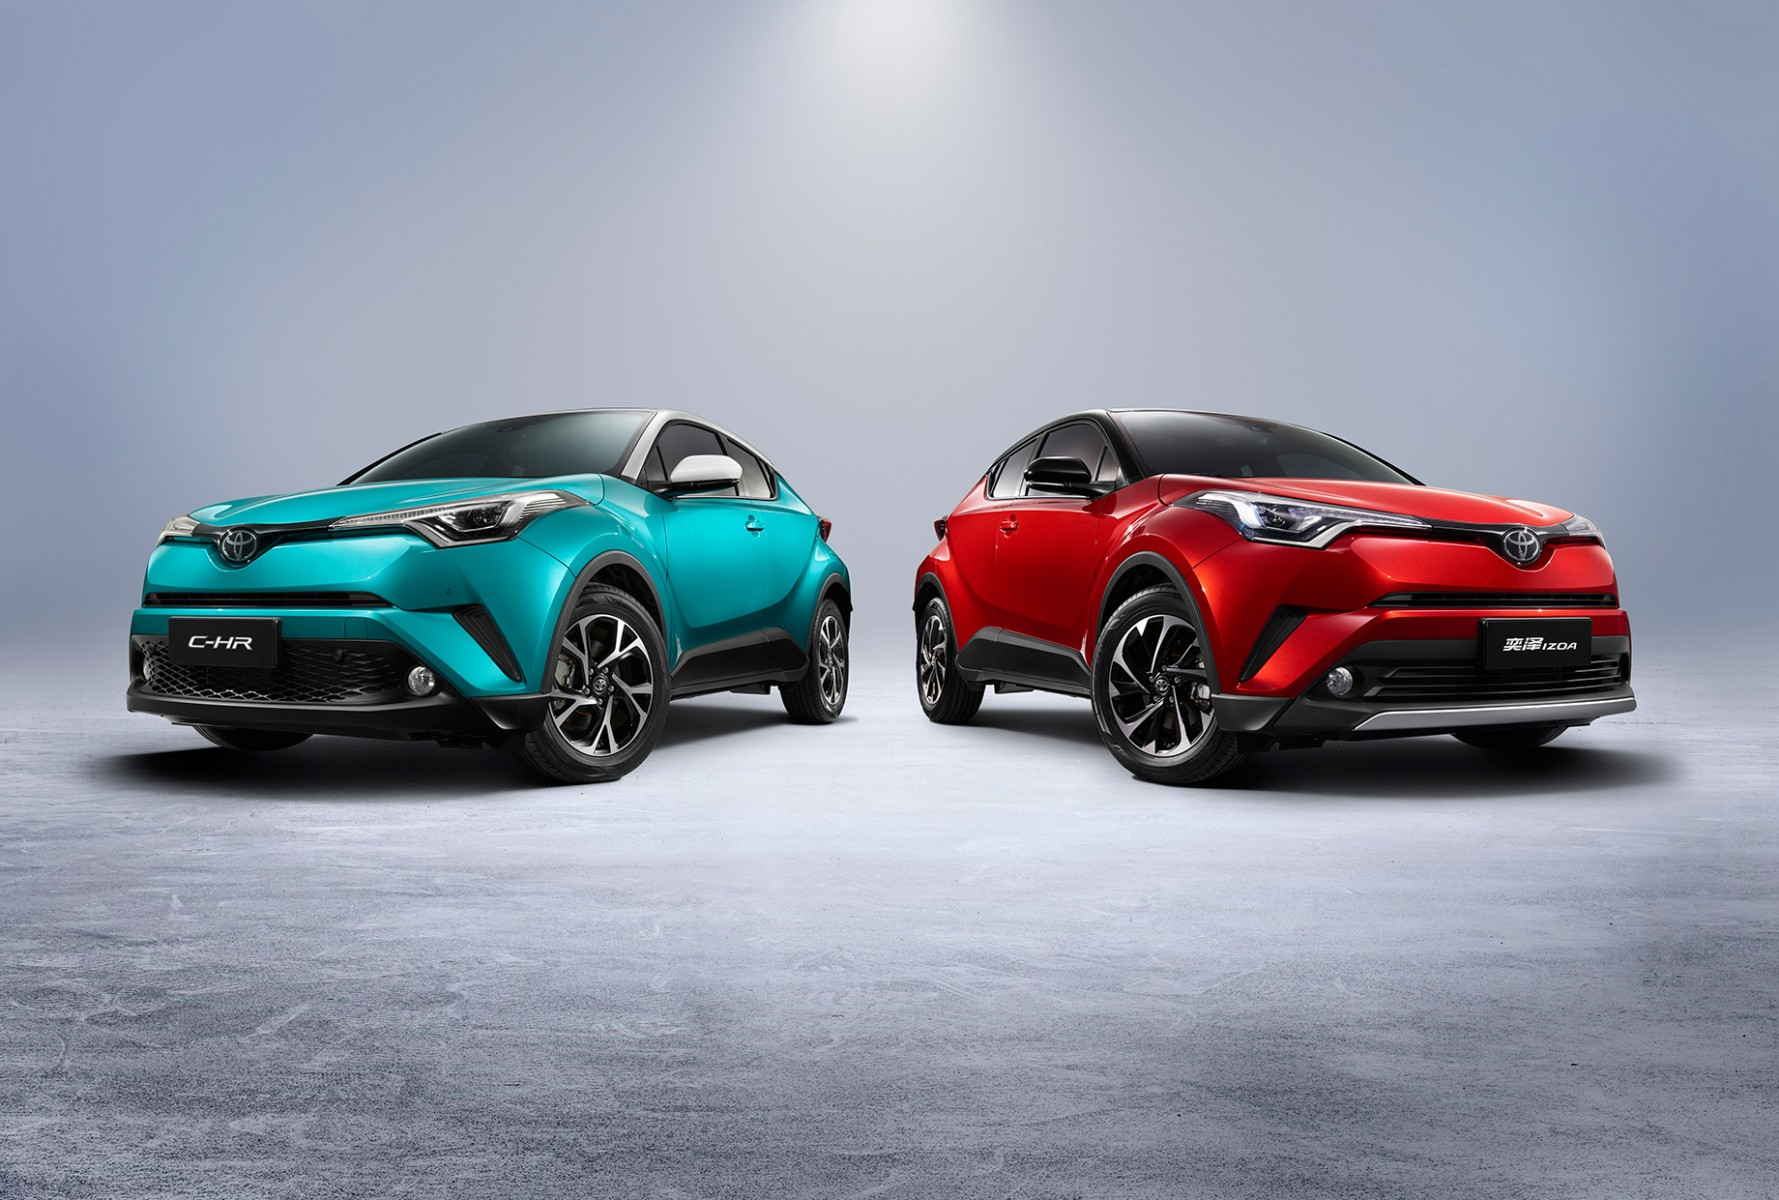 C-HR and IZOA (international combustion engine version)